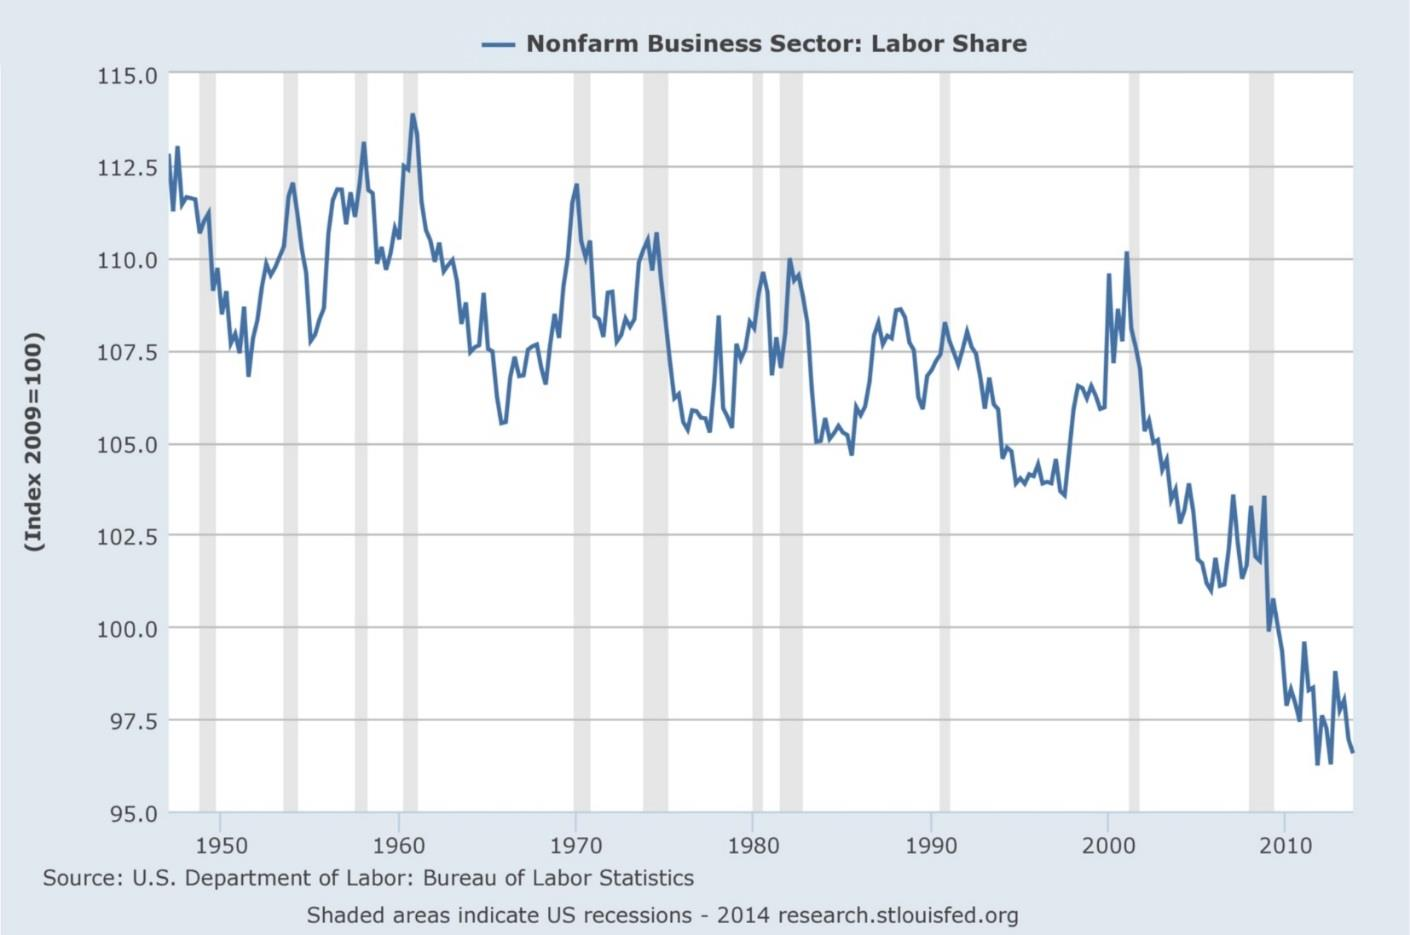 Nonfarm Business Sector: Labor Share